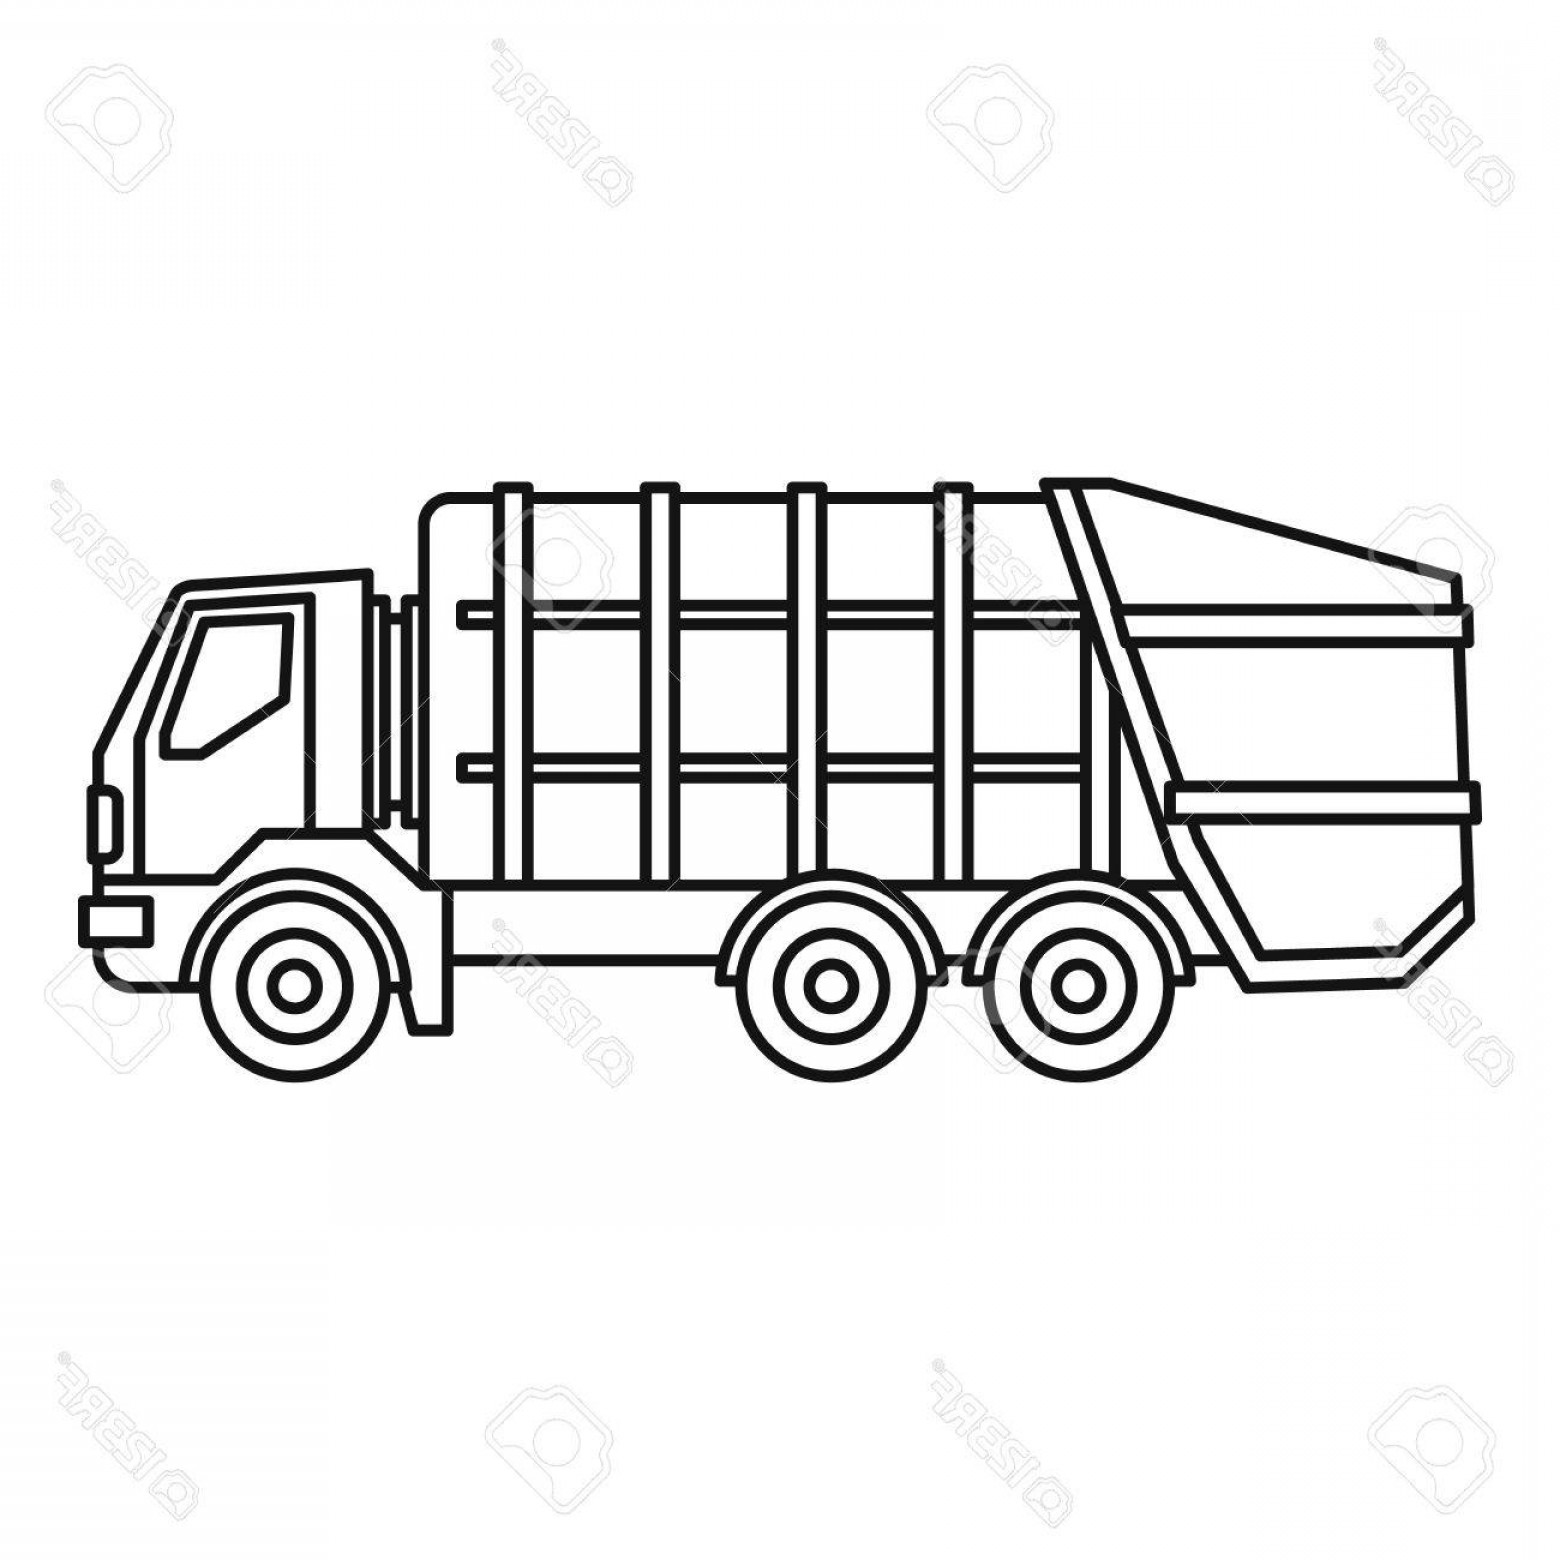 Dump Truck Vector Black And White: Photostock Vector Garbage Truck Icon Outline Illustration Of Garbage Truck Vector Icon For Web